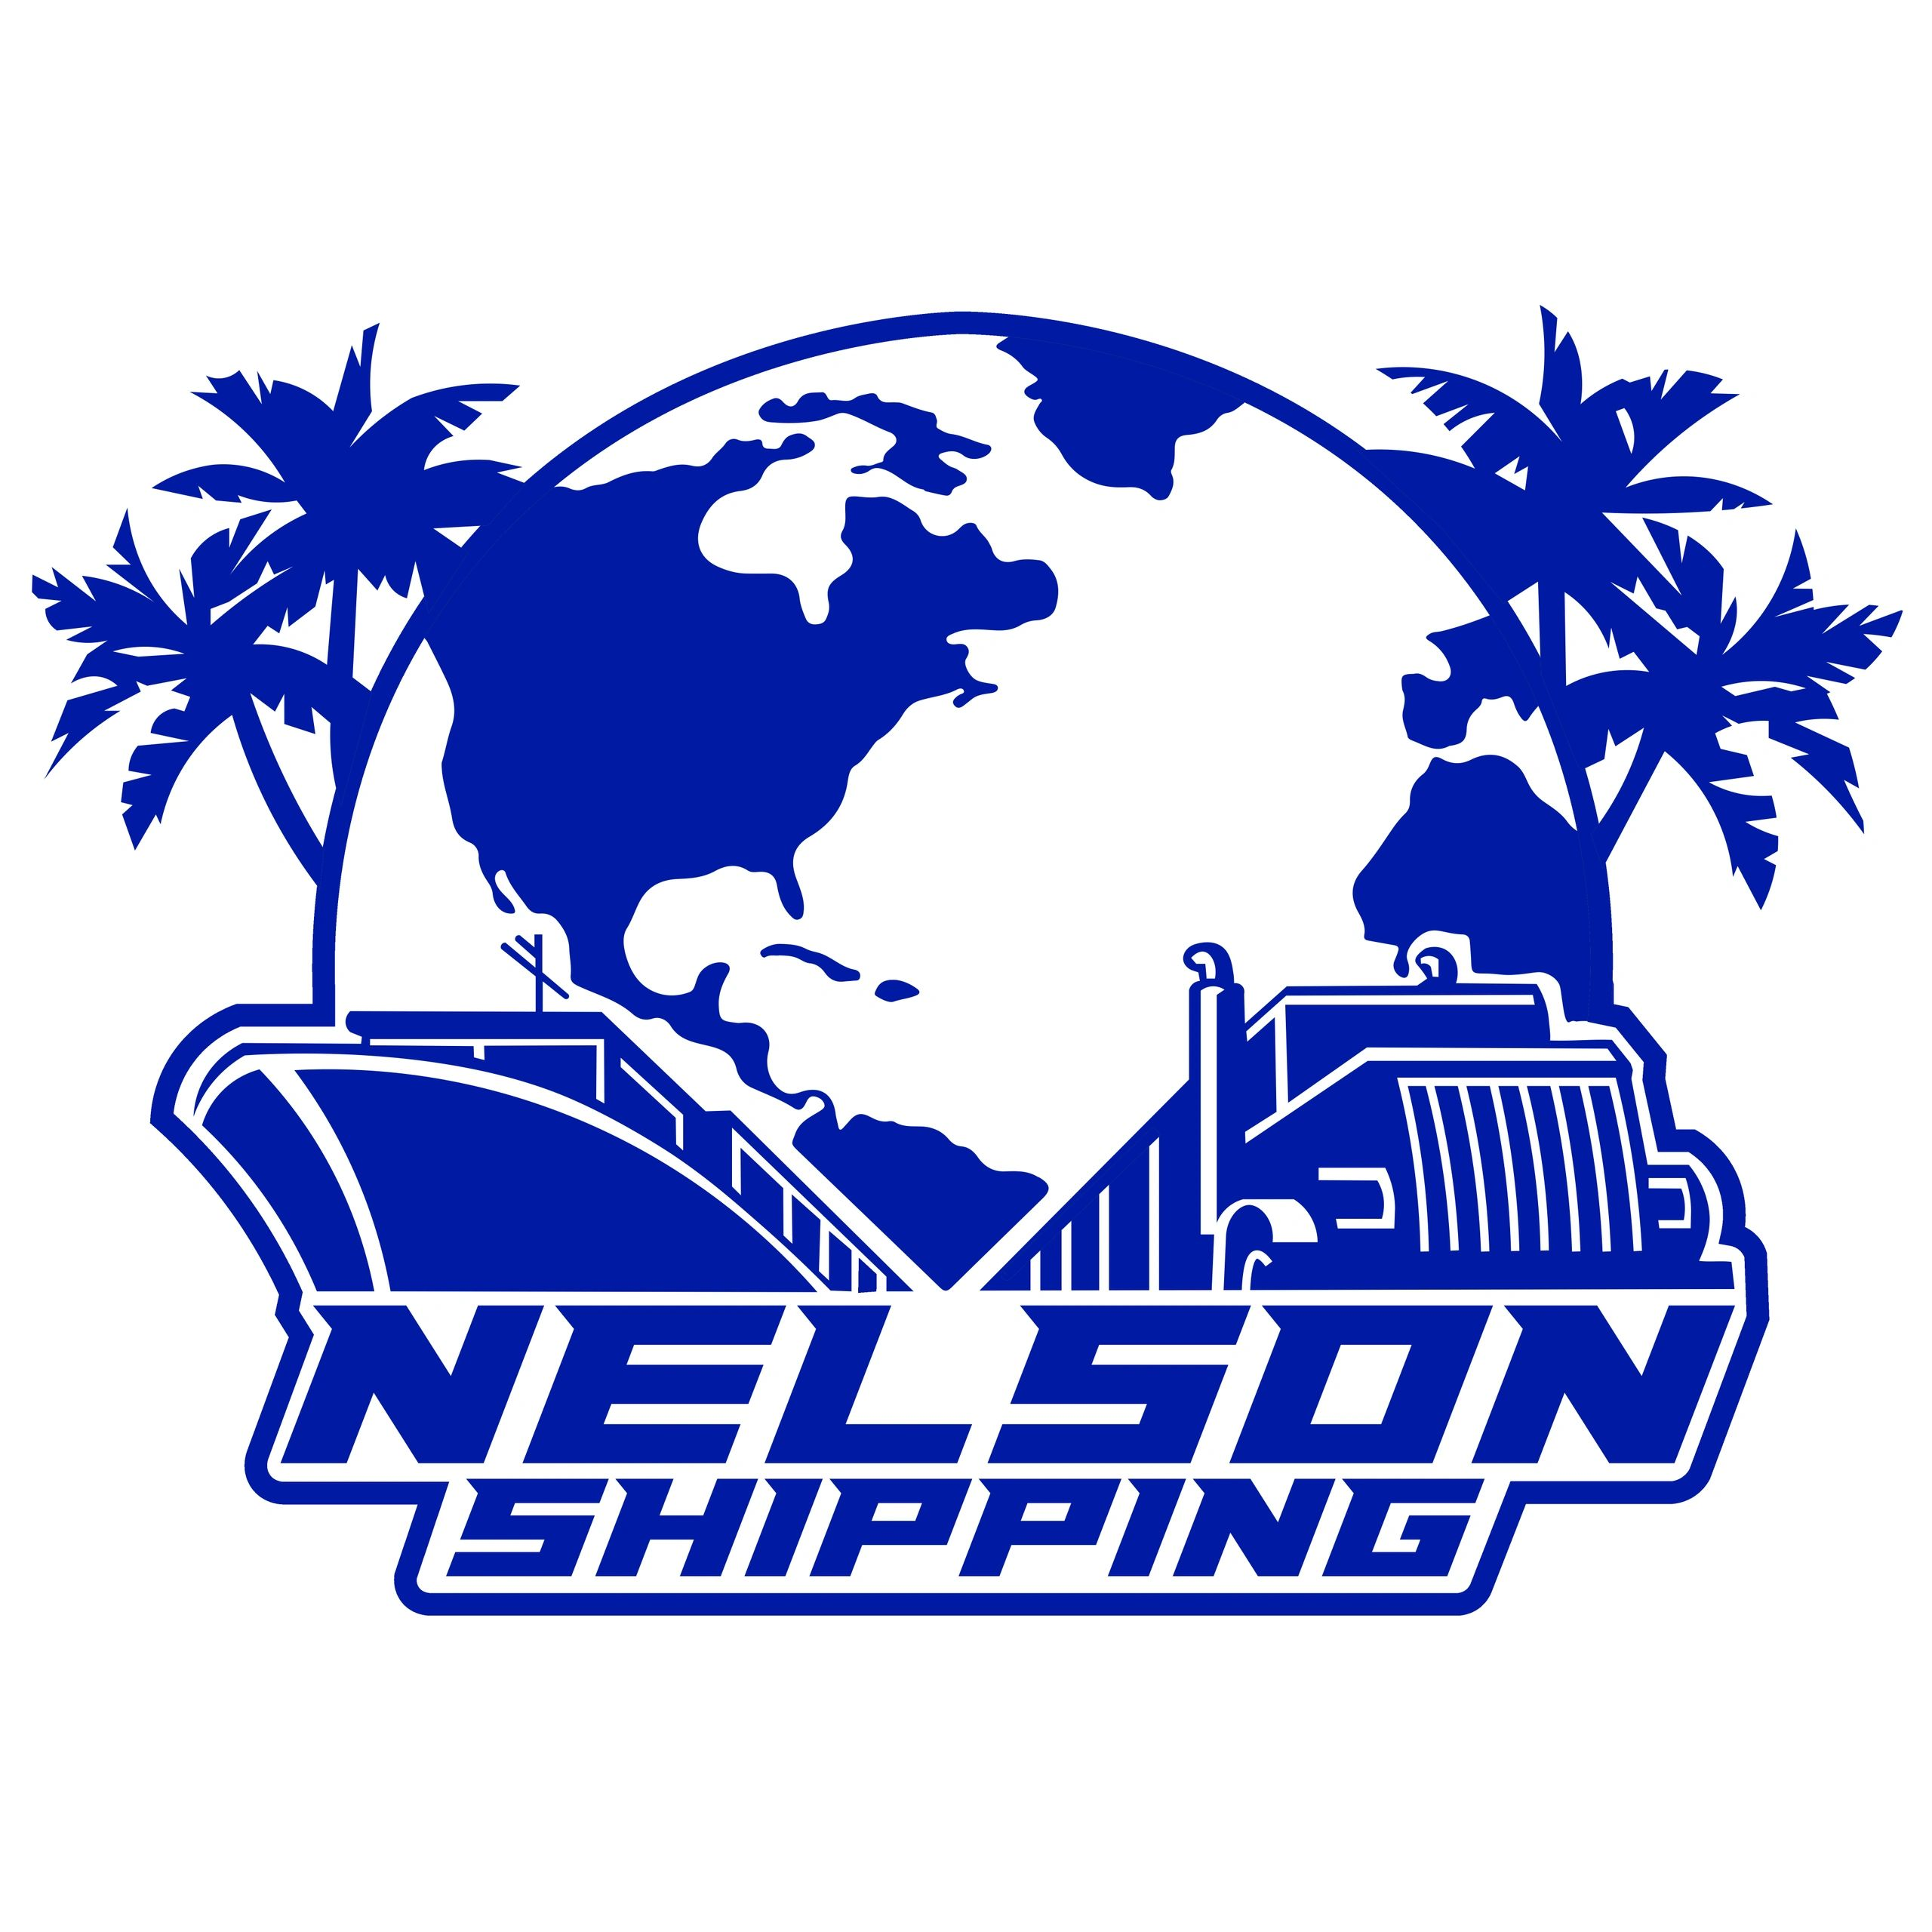 Nelson Shipping - Freight Forwarder, Shipping, Us Customs